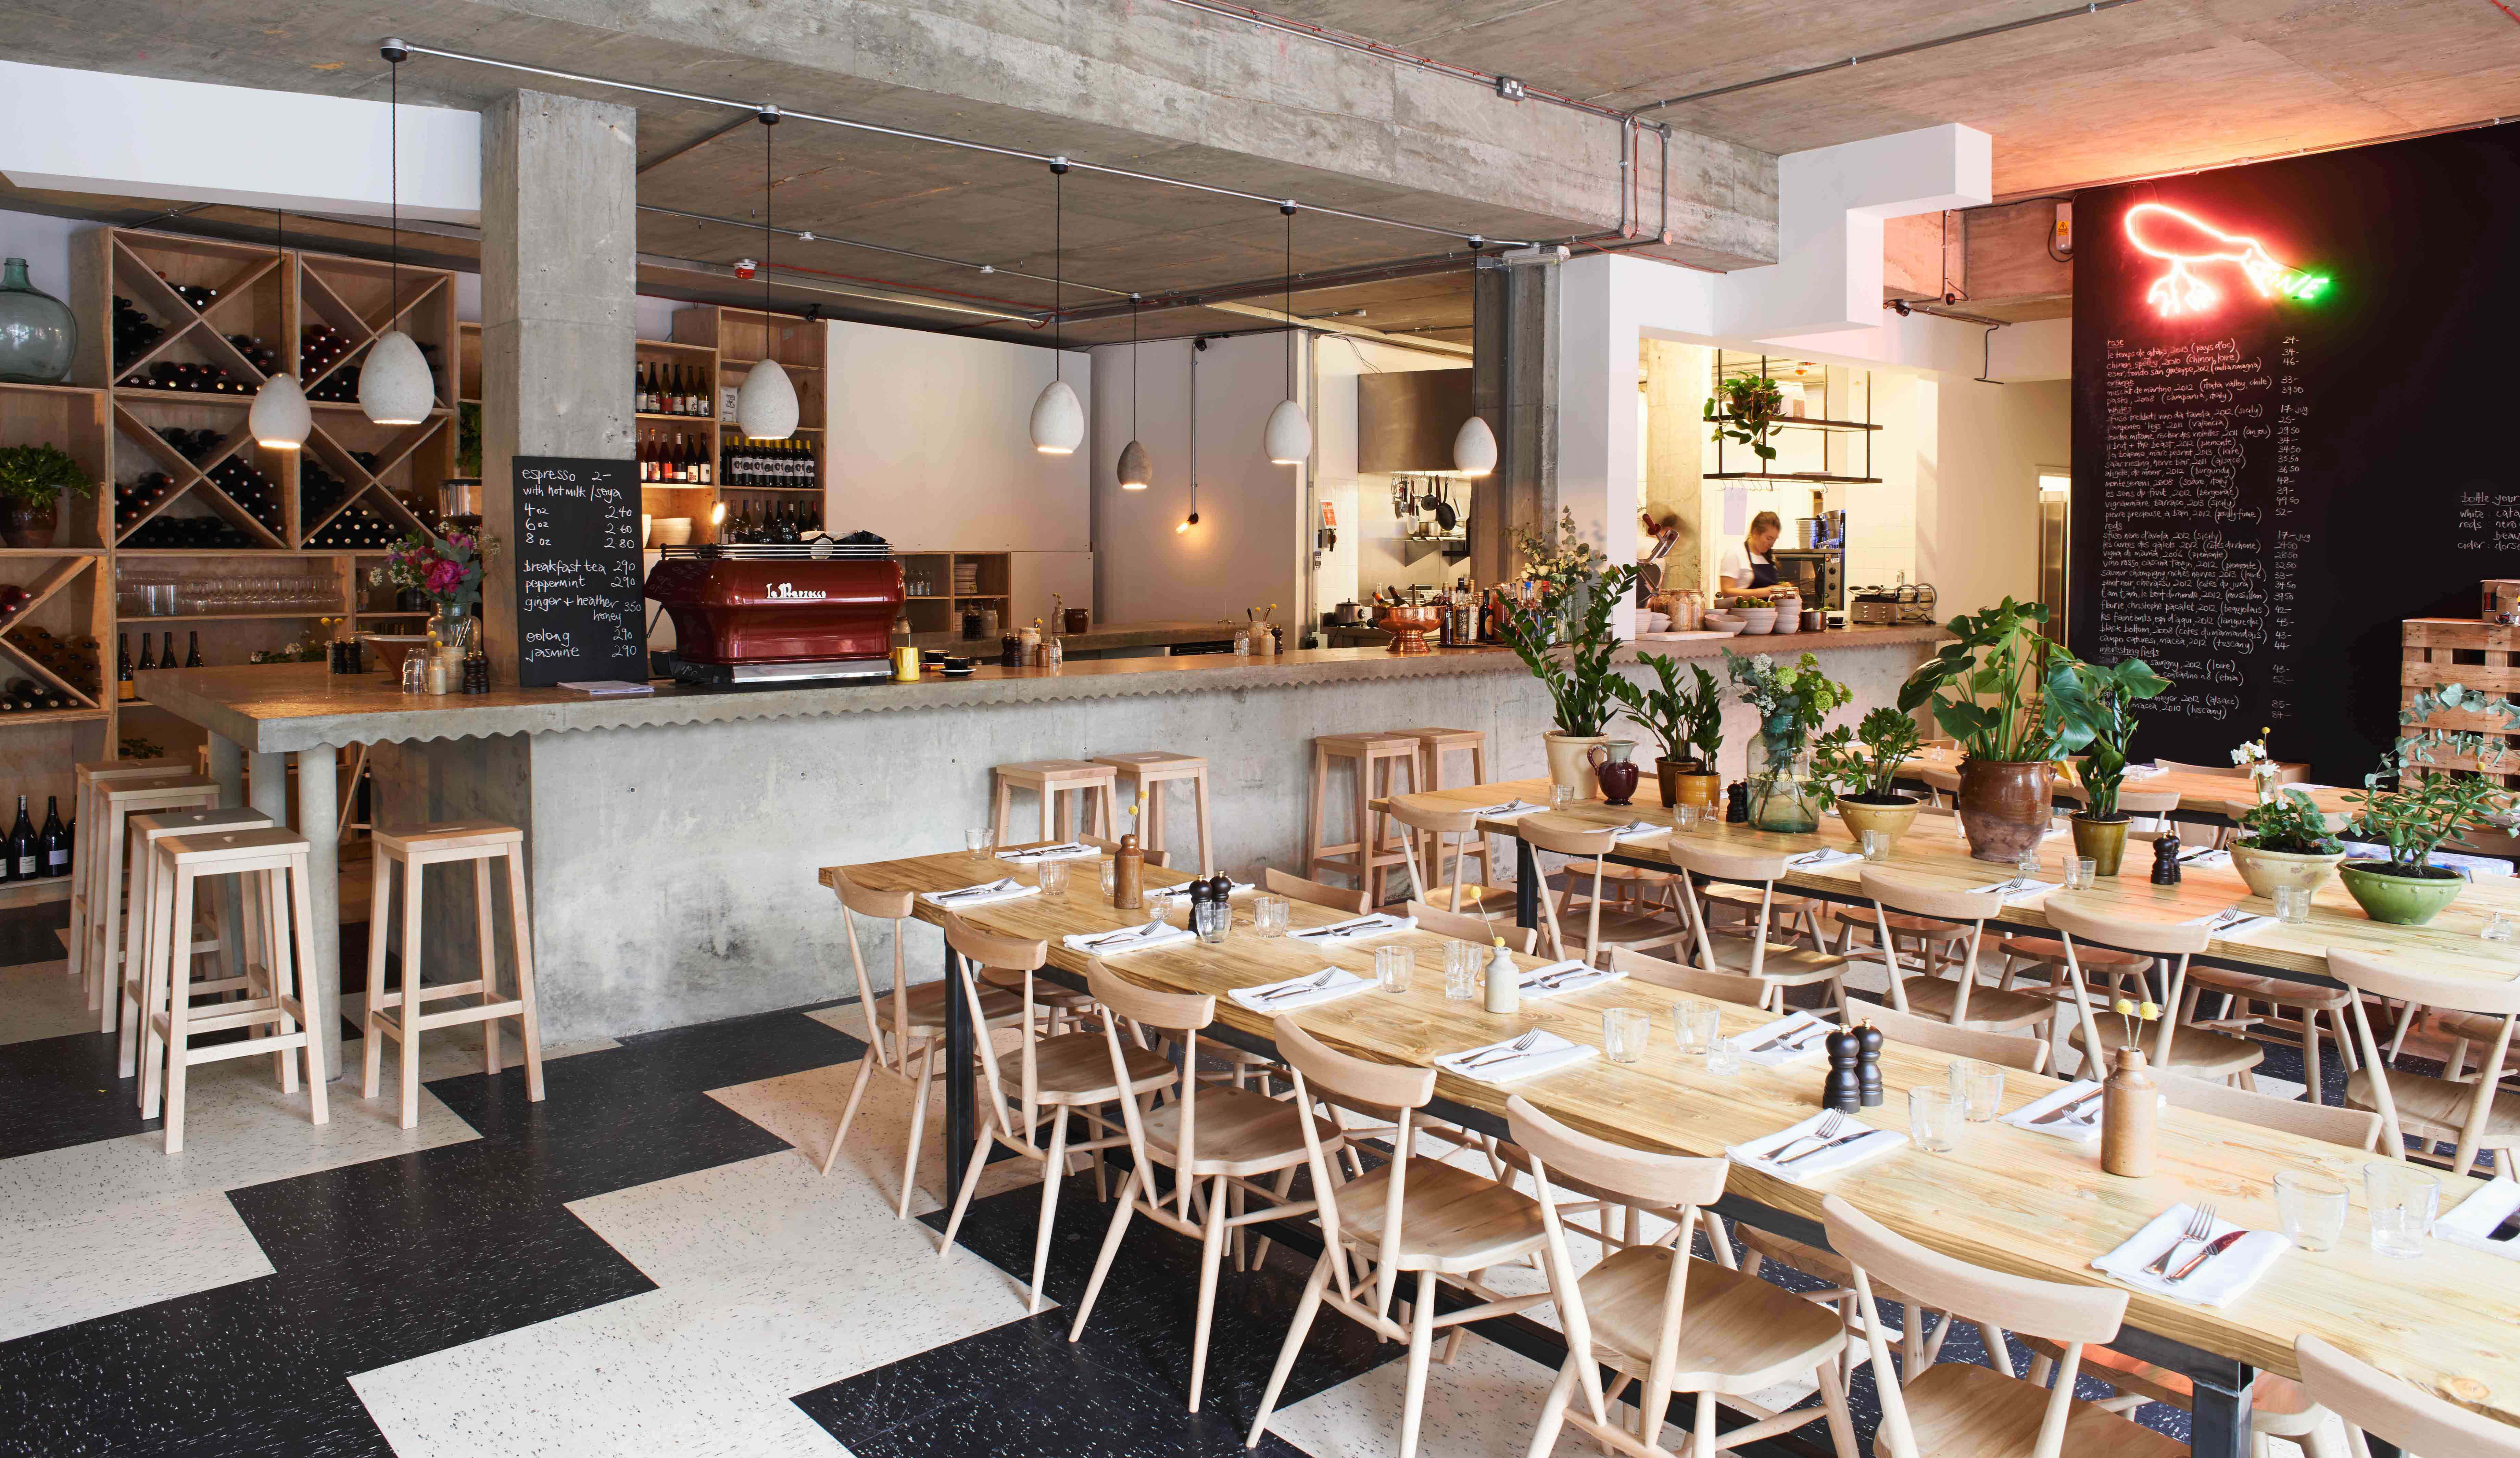 Restaurant Visit Communal Tables and Biodynamic Wines at Rawduck in Hackney raw duck london interior overview